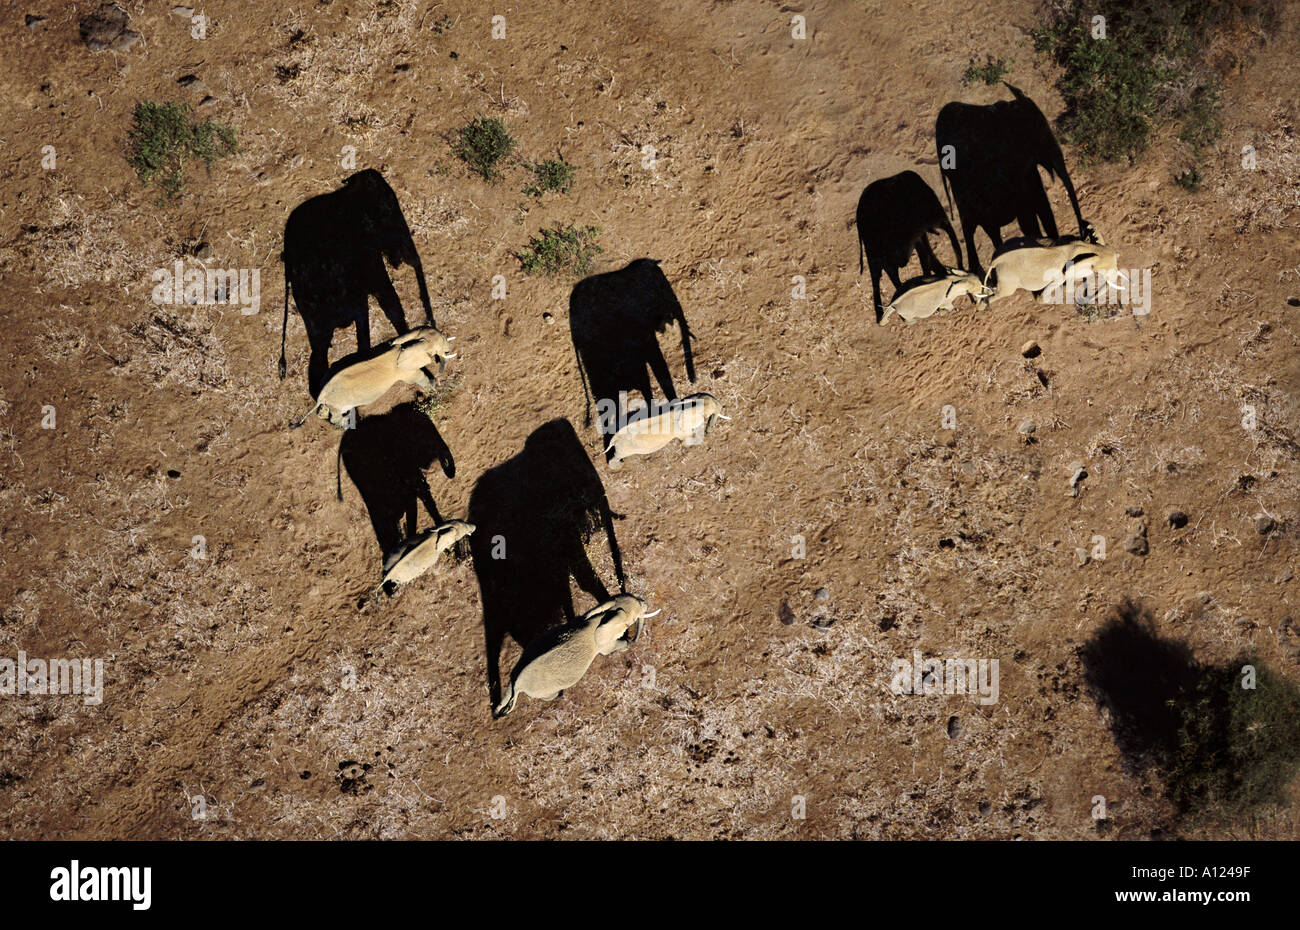 Elephants casting shadows Amboseli National Park Kenya Stock Photo